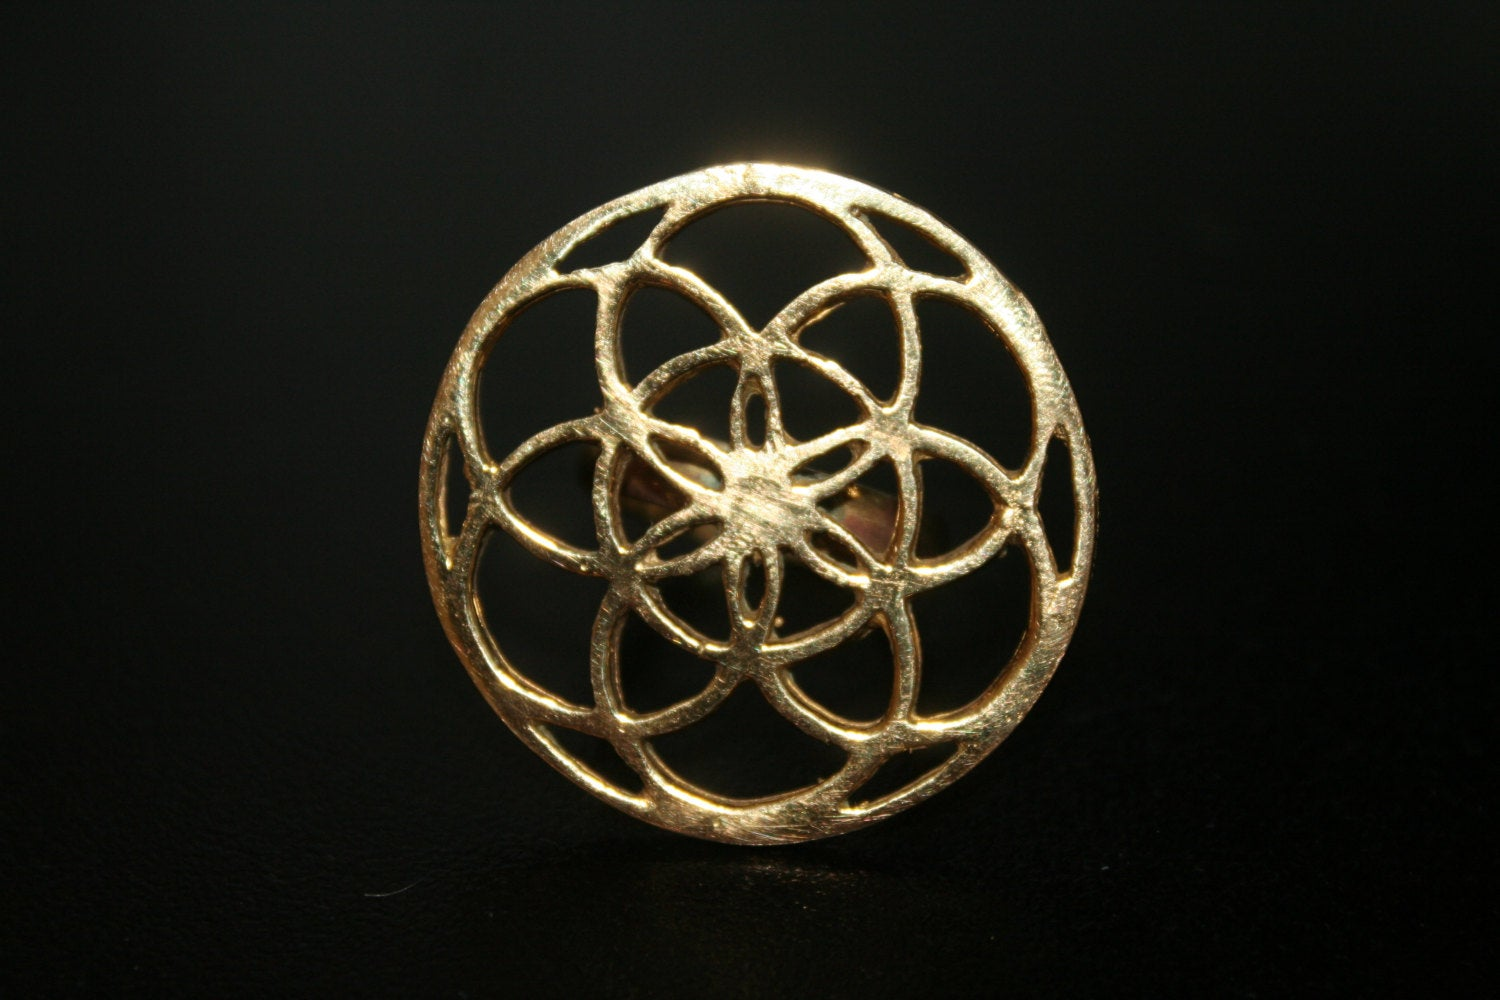 SEED OF LIFE Brass Ring - Gypsy Ring, Tribal Ring, Hippie Ring, Boho Ring, Psy, Flower of Life Ring, Sacred Geometry Ring Size K L M N O P